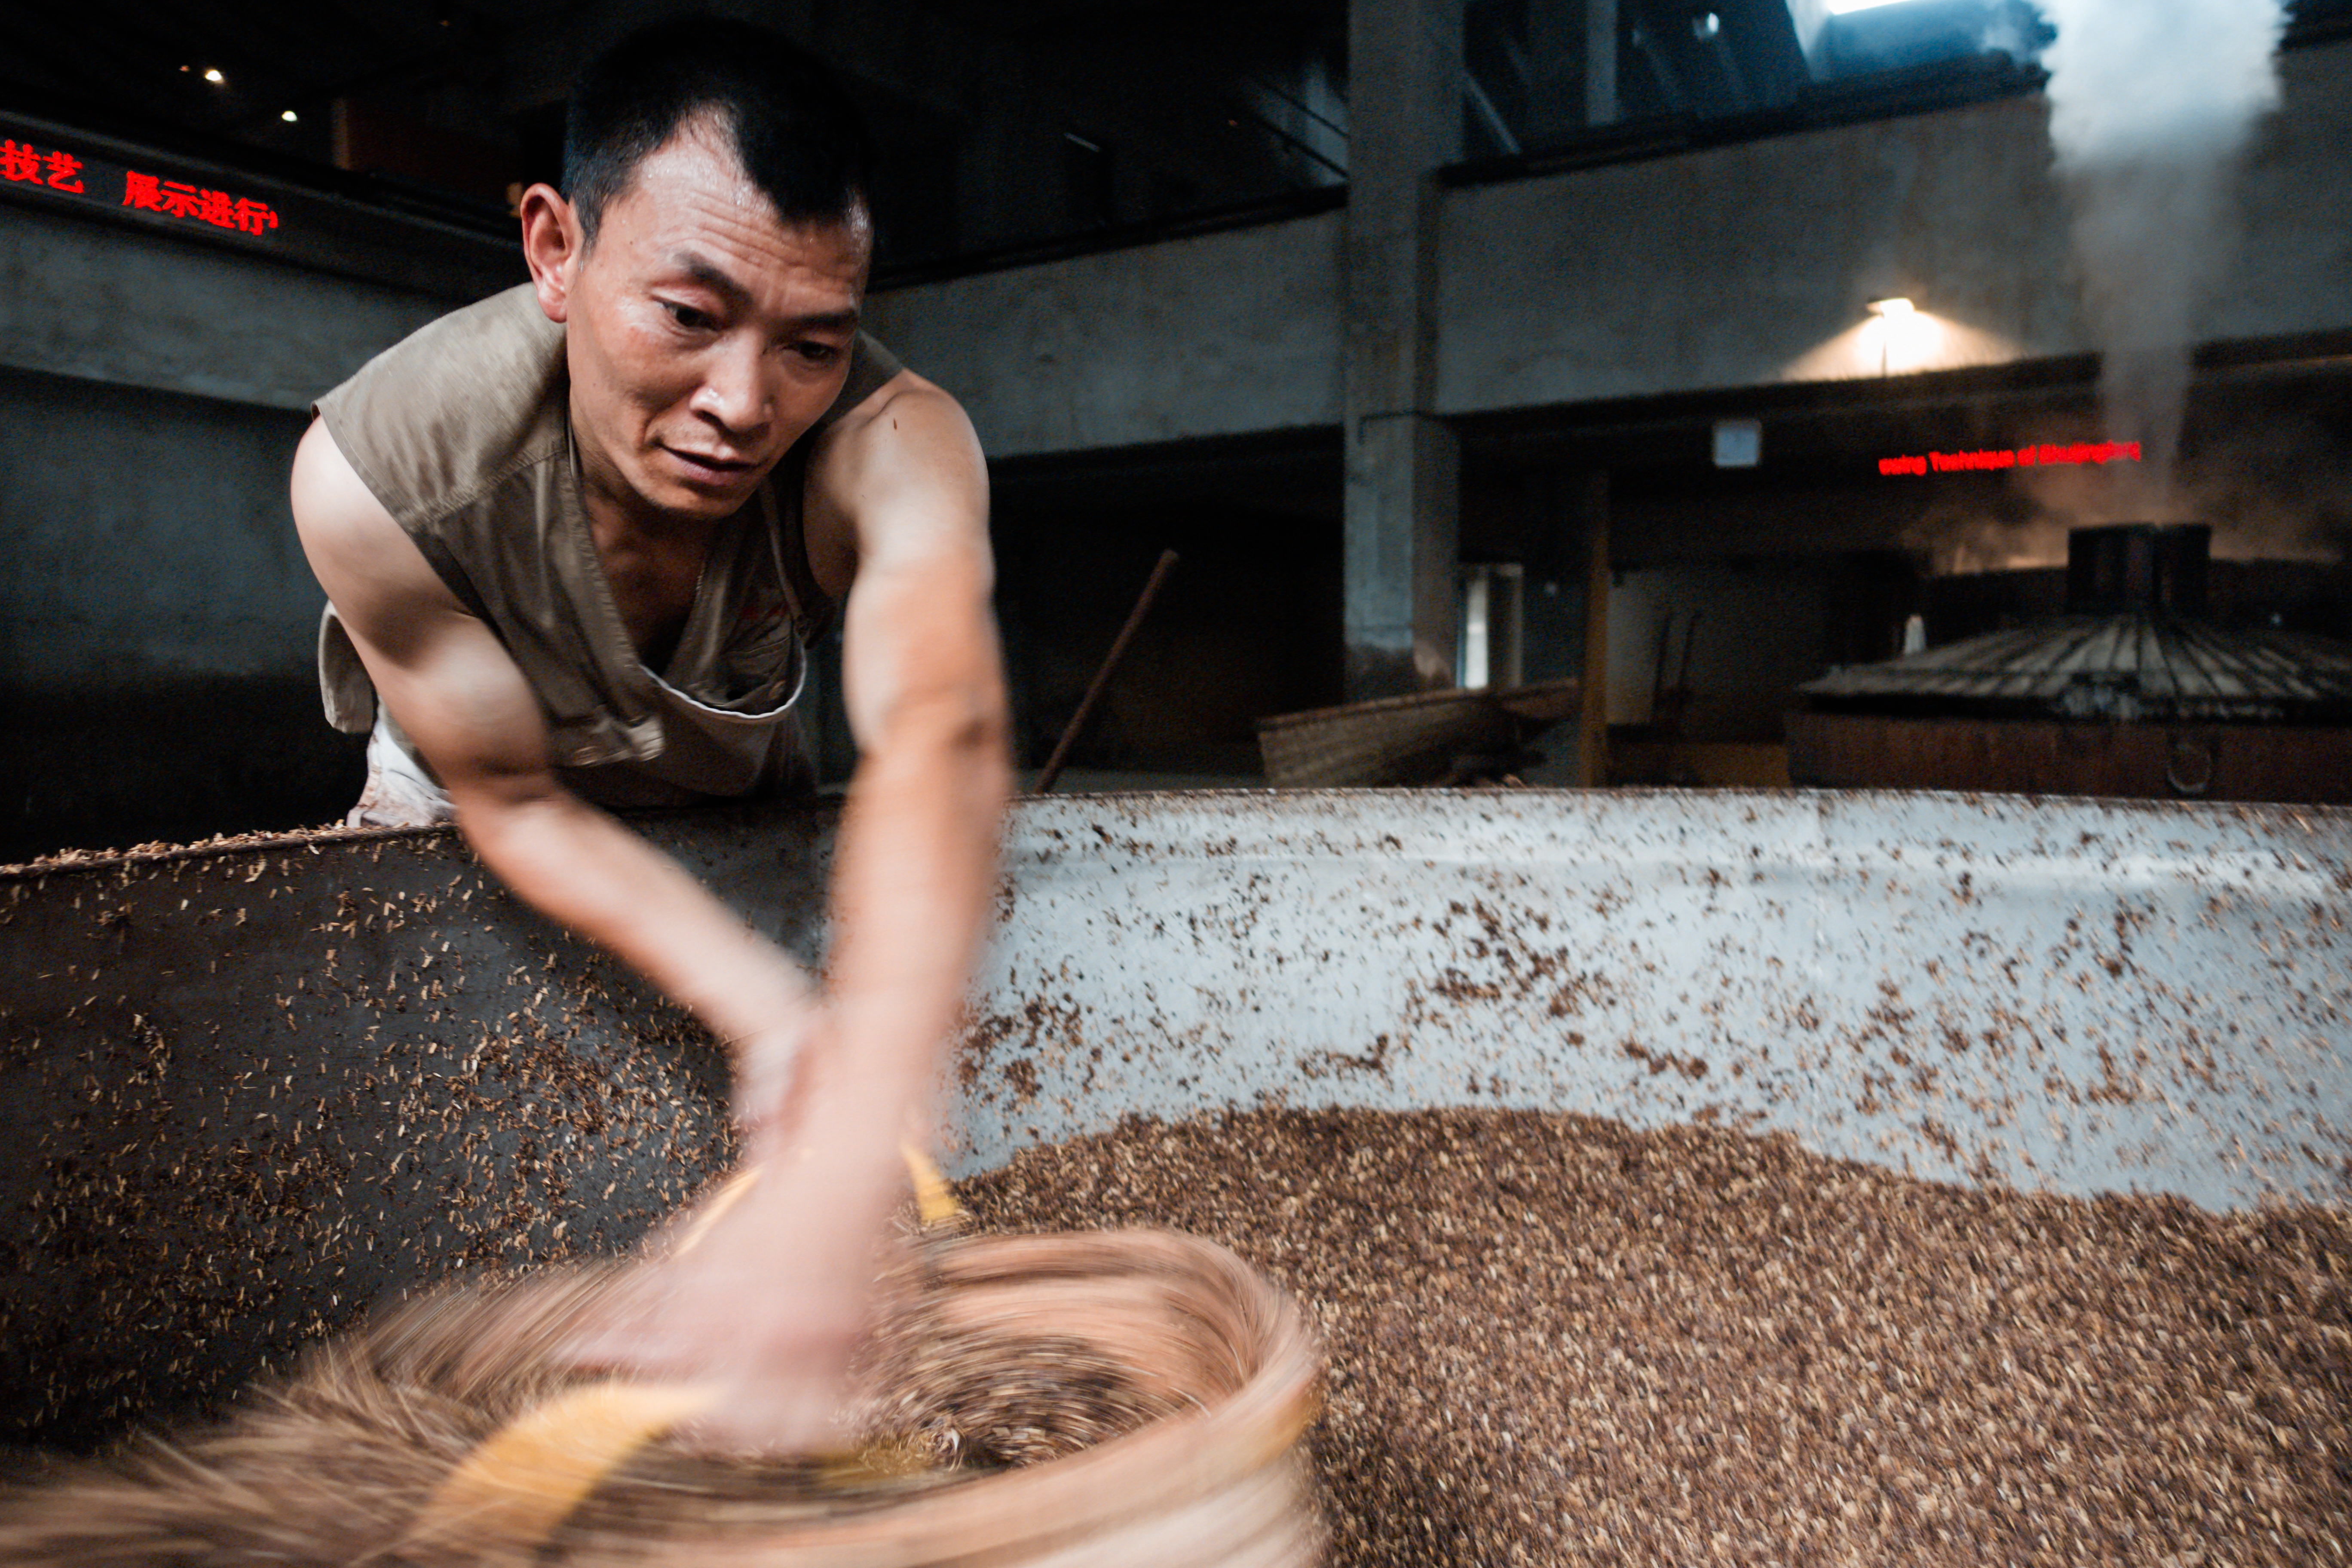 Photo 1: A worker sifts through a vat of grains at the museum production area. The museum is dedicated to the history and culture of this quintessential Chinese spirit. Photo 2: Workers add Qu, or starter culture, to a mash of grains at the museum production area. Baijiu recipes vary widely and include grains like sorghum, rice, corn and wheat.